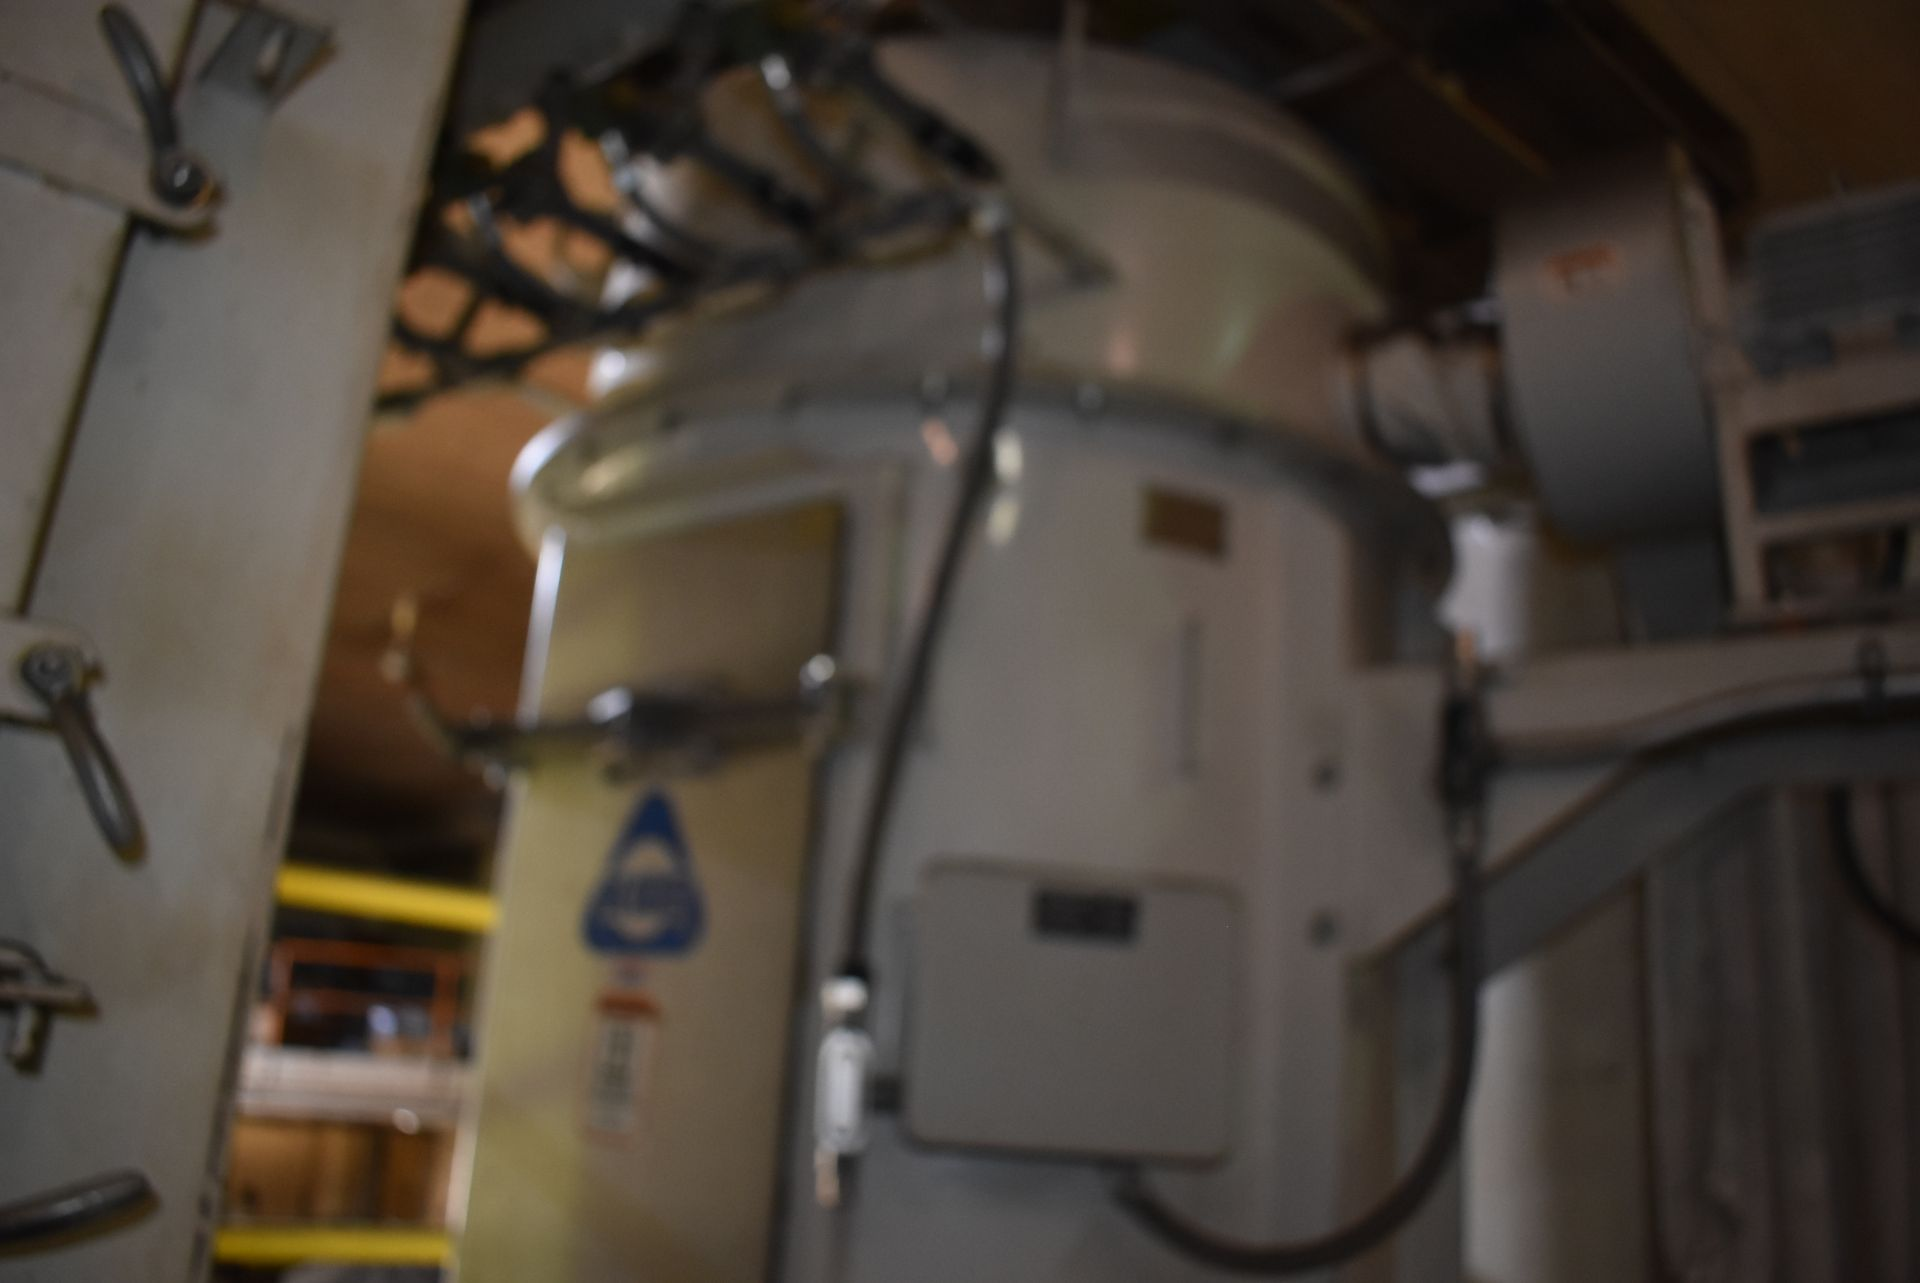 Kice Model #VR-214BINVENT Dust Collection System - Image 3 of 3